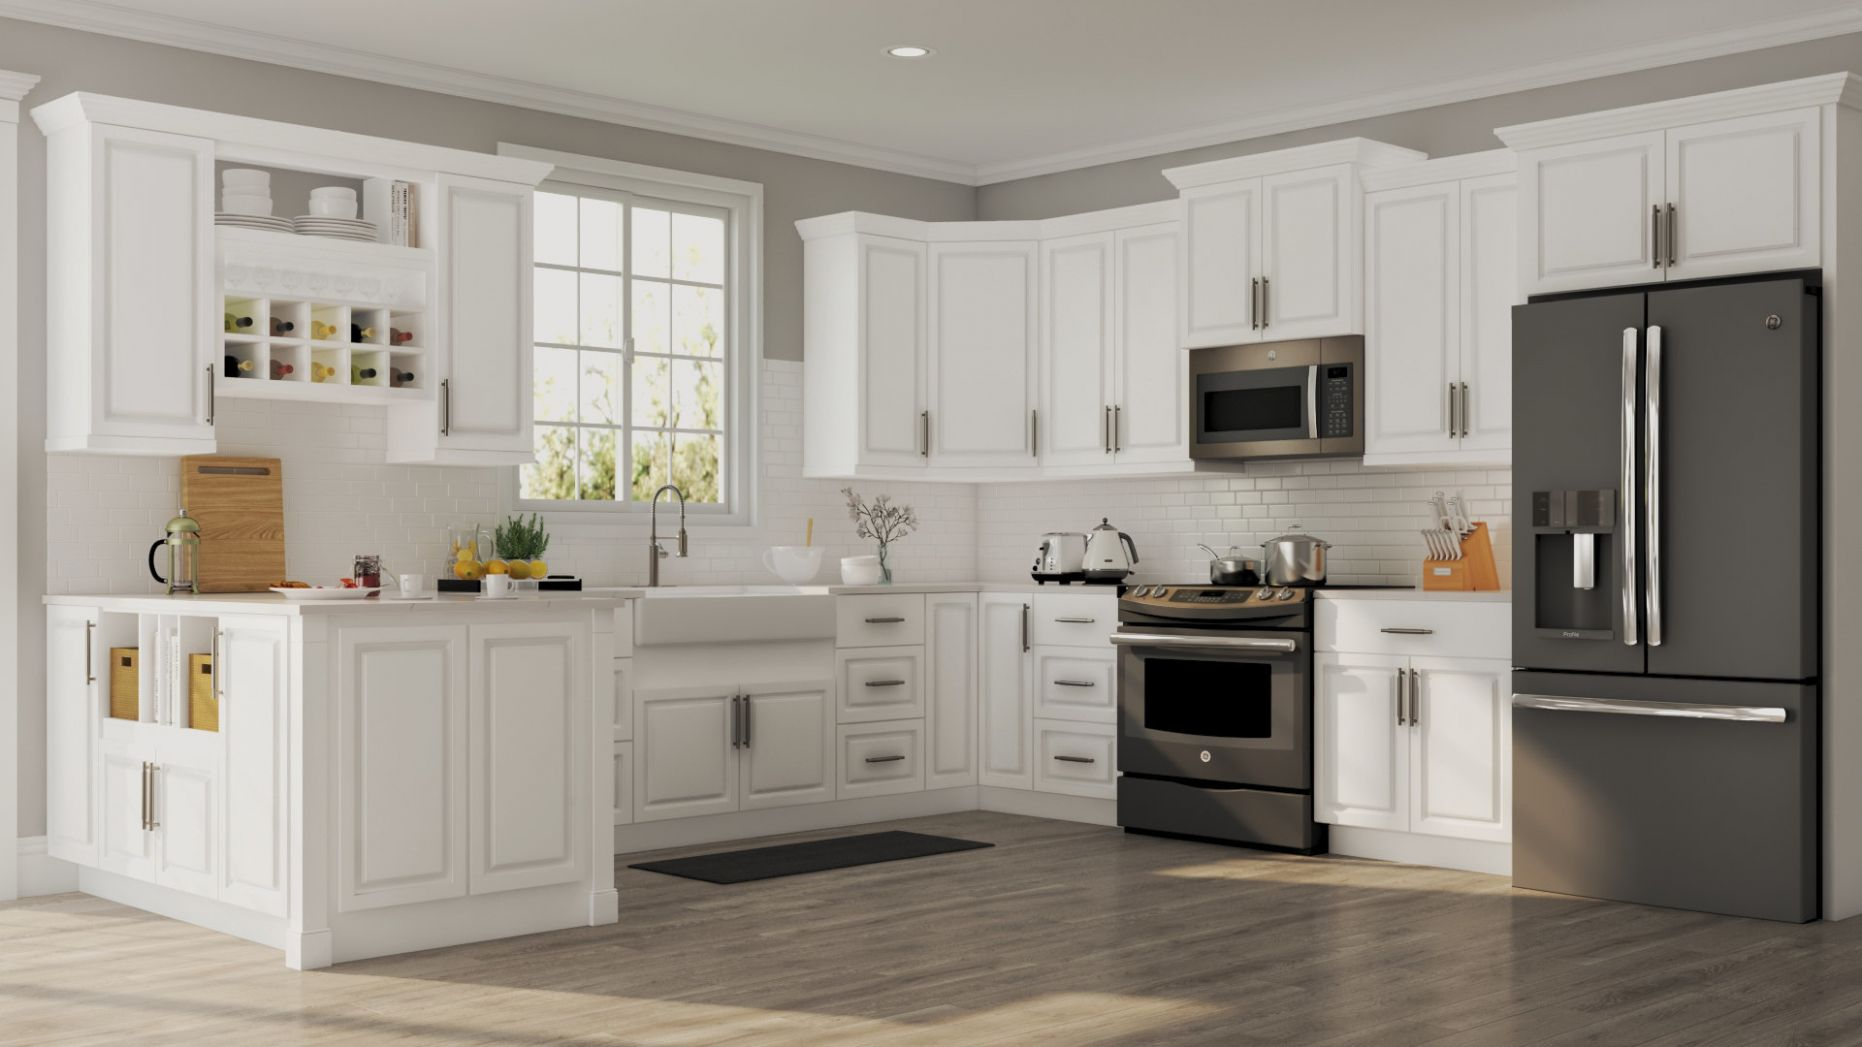 Hampton Wall Cabinets in White – Kitchen – The Home Depot - kitchen ideas home depot